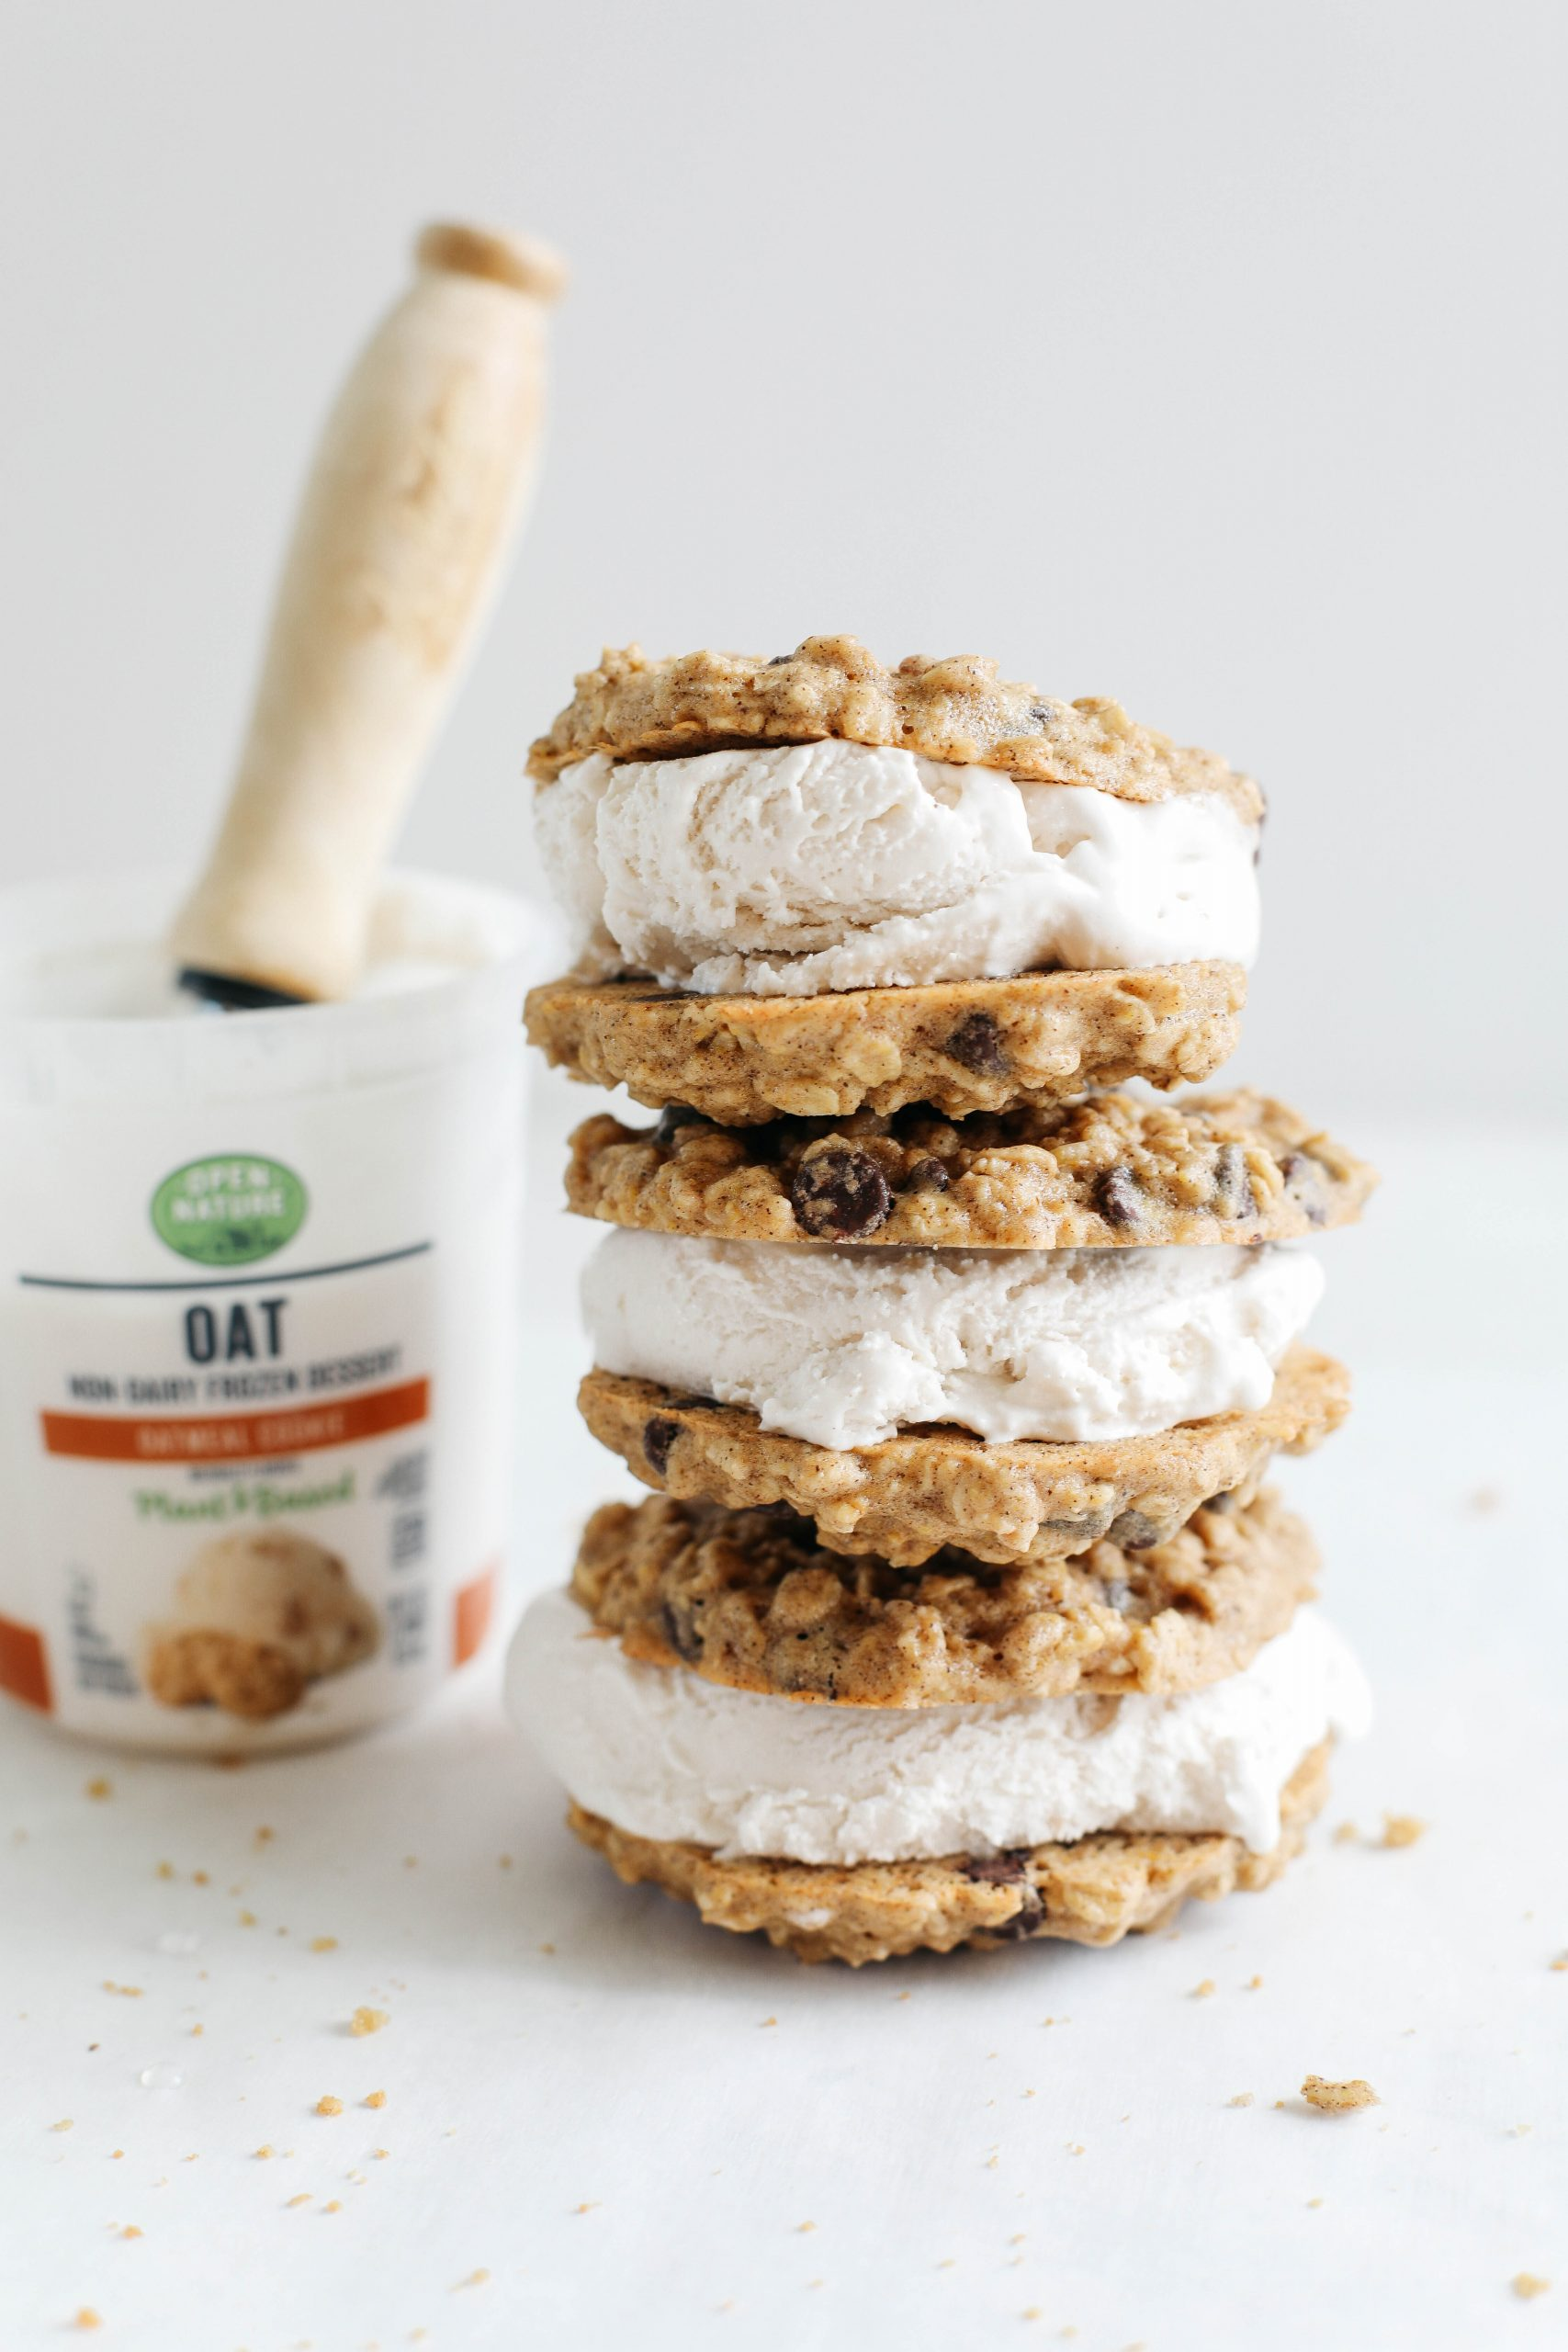 Celebrate the summer with these homemade oatmeal chocolate chip cookie ice cream sandwiches that are dairy-free, vegan and taste just like your childhood!